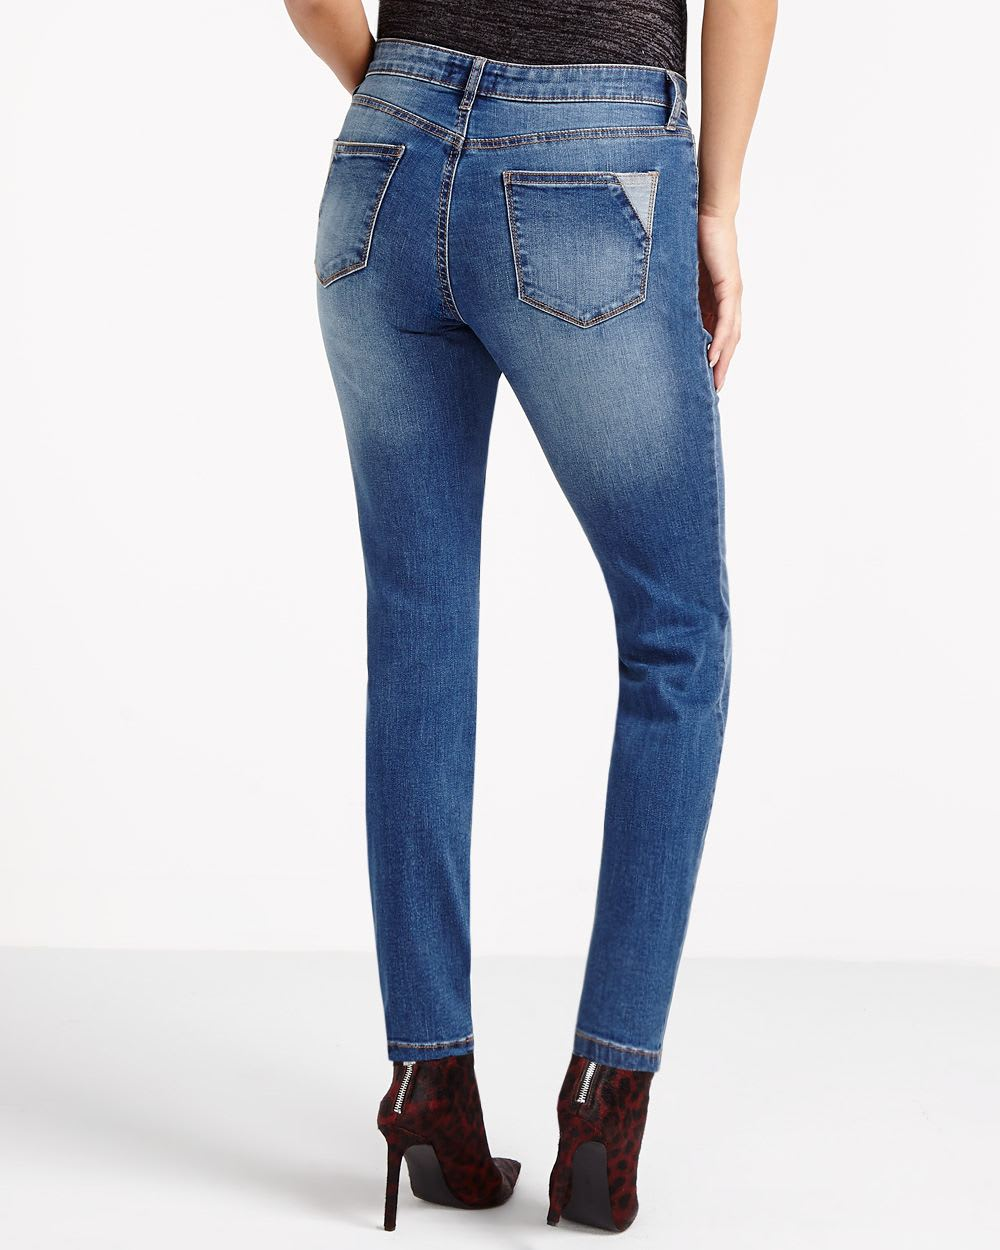 Free shipping on petite jeans for women at roeprocjfc.ga Shop for petite-size jeans from the best brands. Totally free shipping and returns.